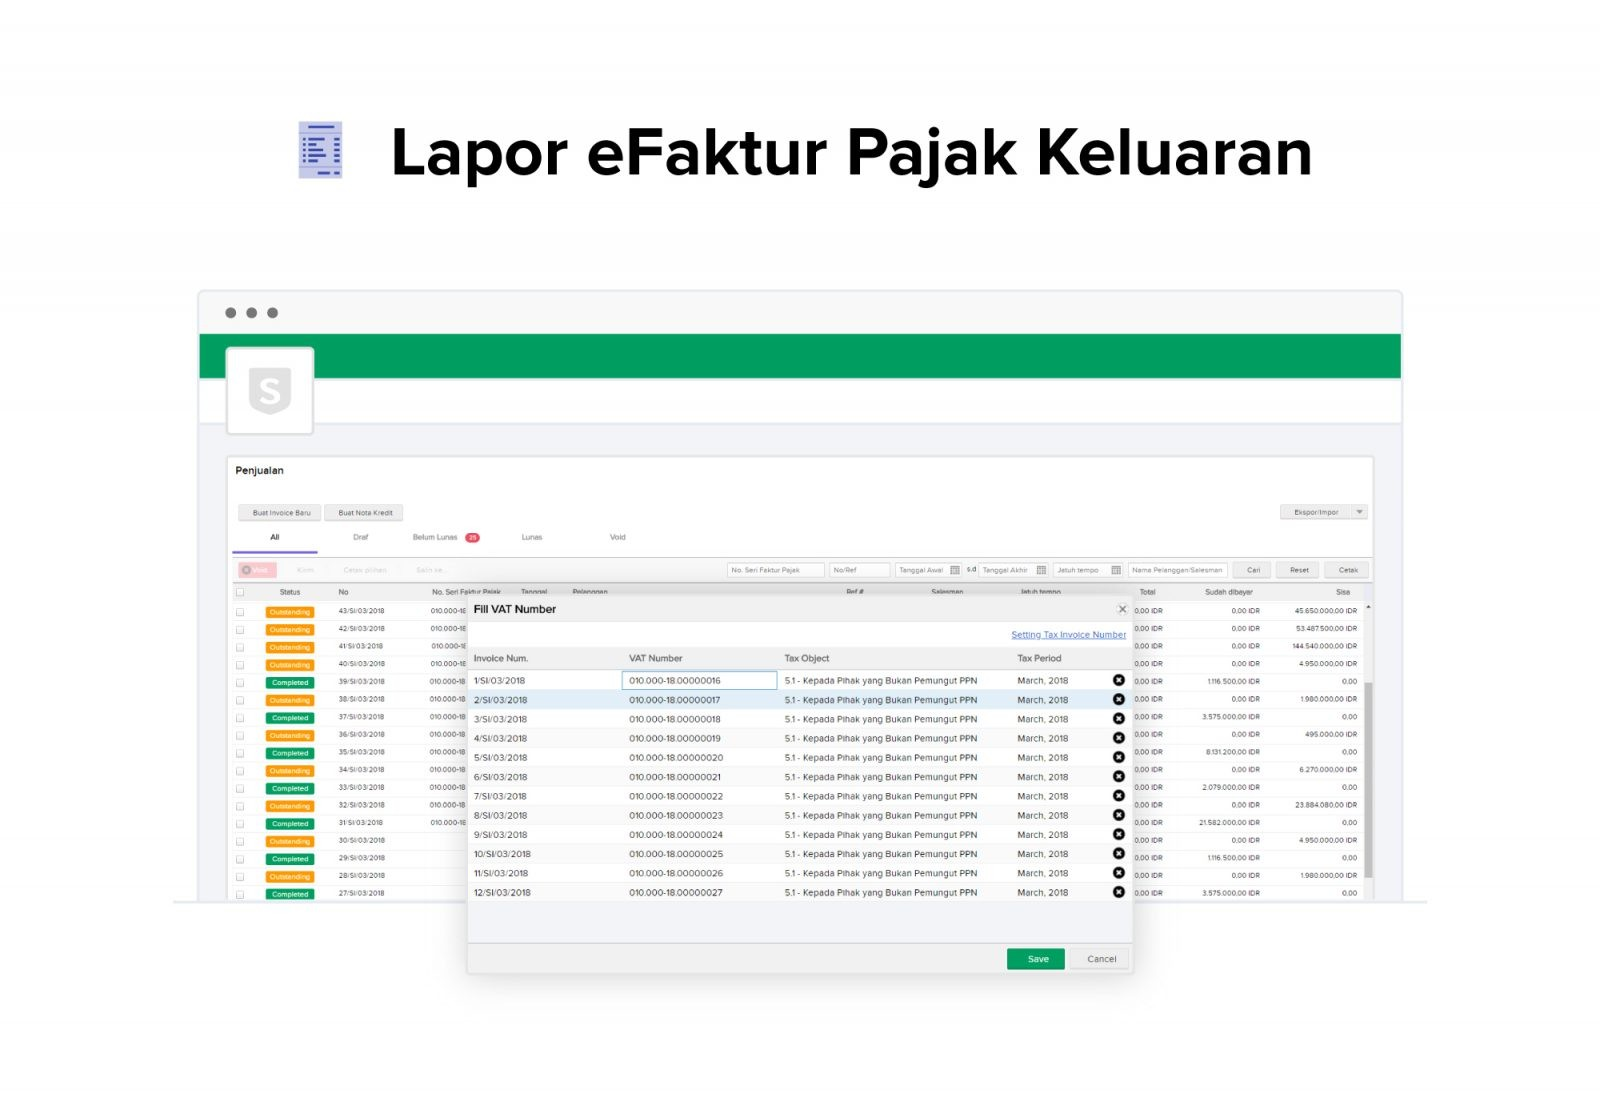 sleekr accounting,budgeting, sleekr, software akuntansi, accounting software, eFaktur